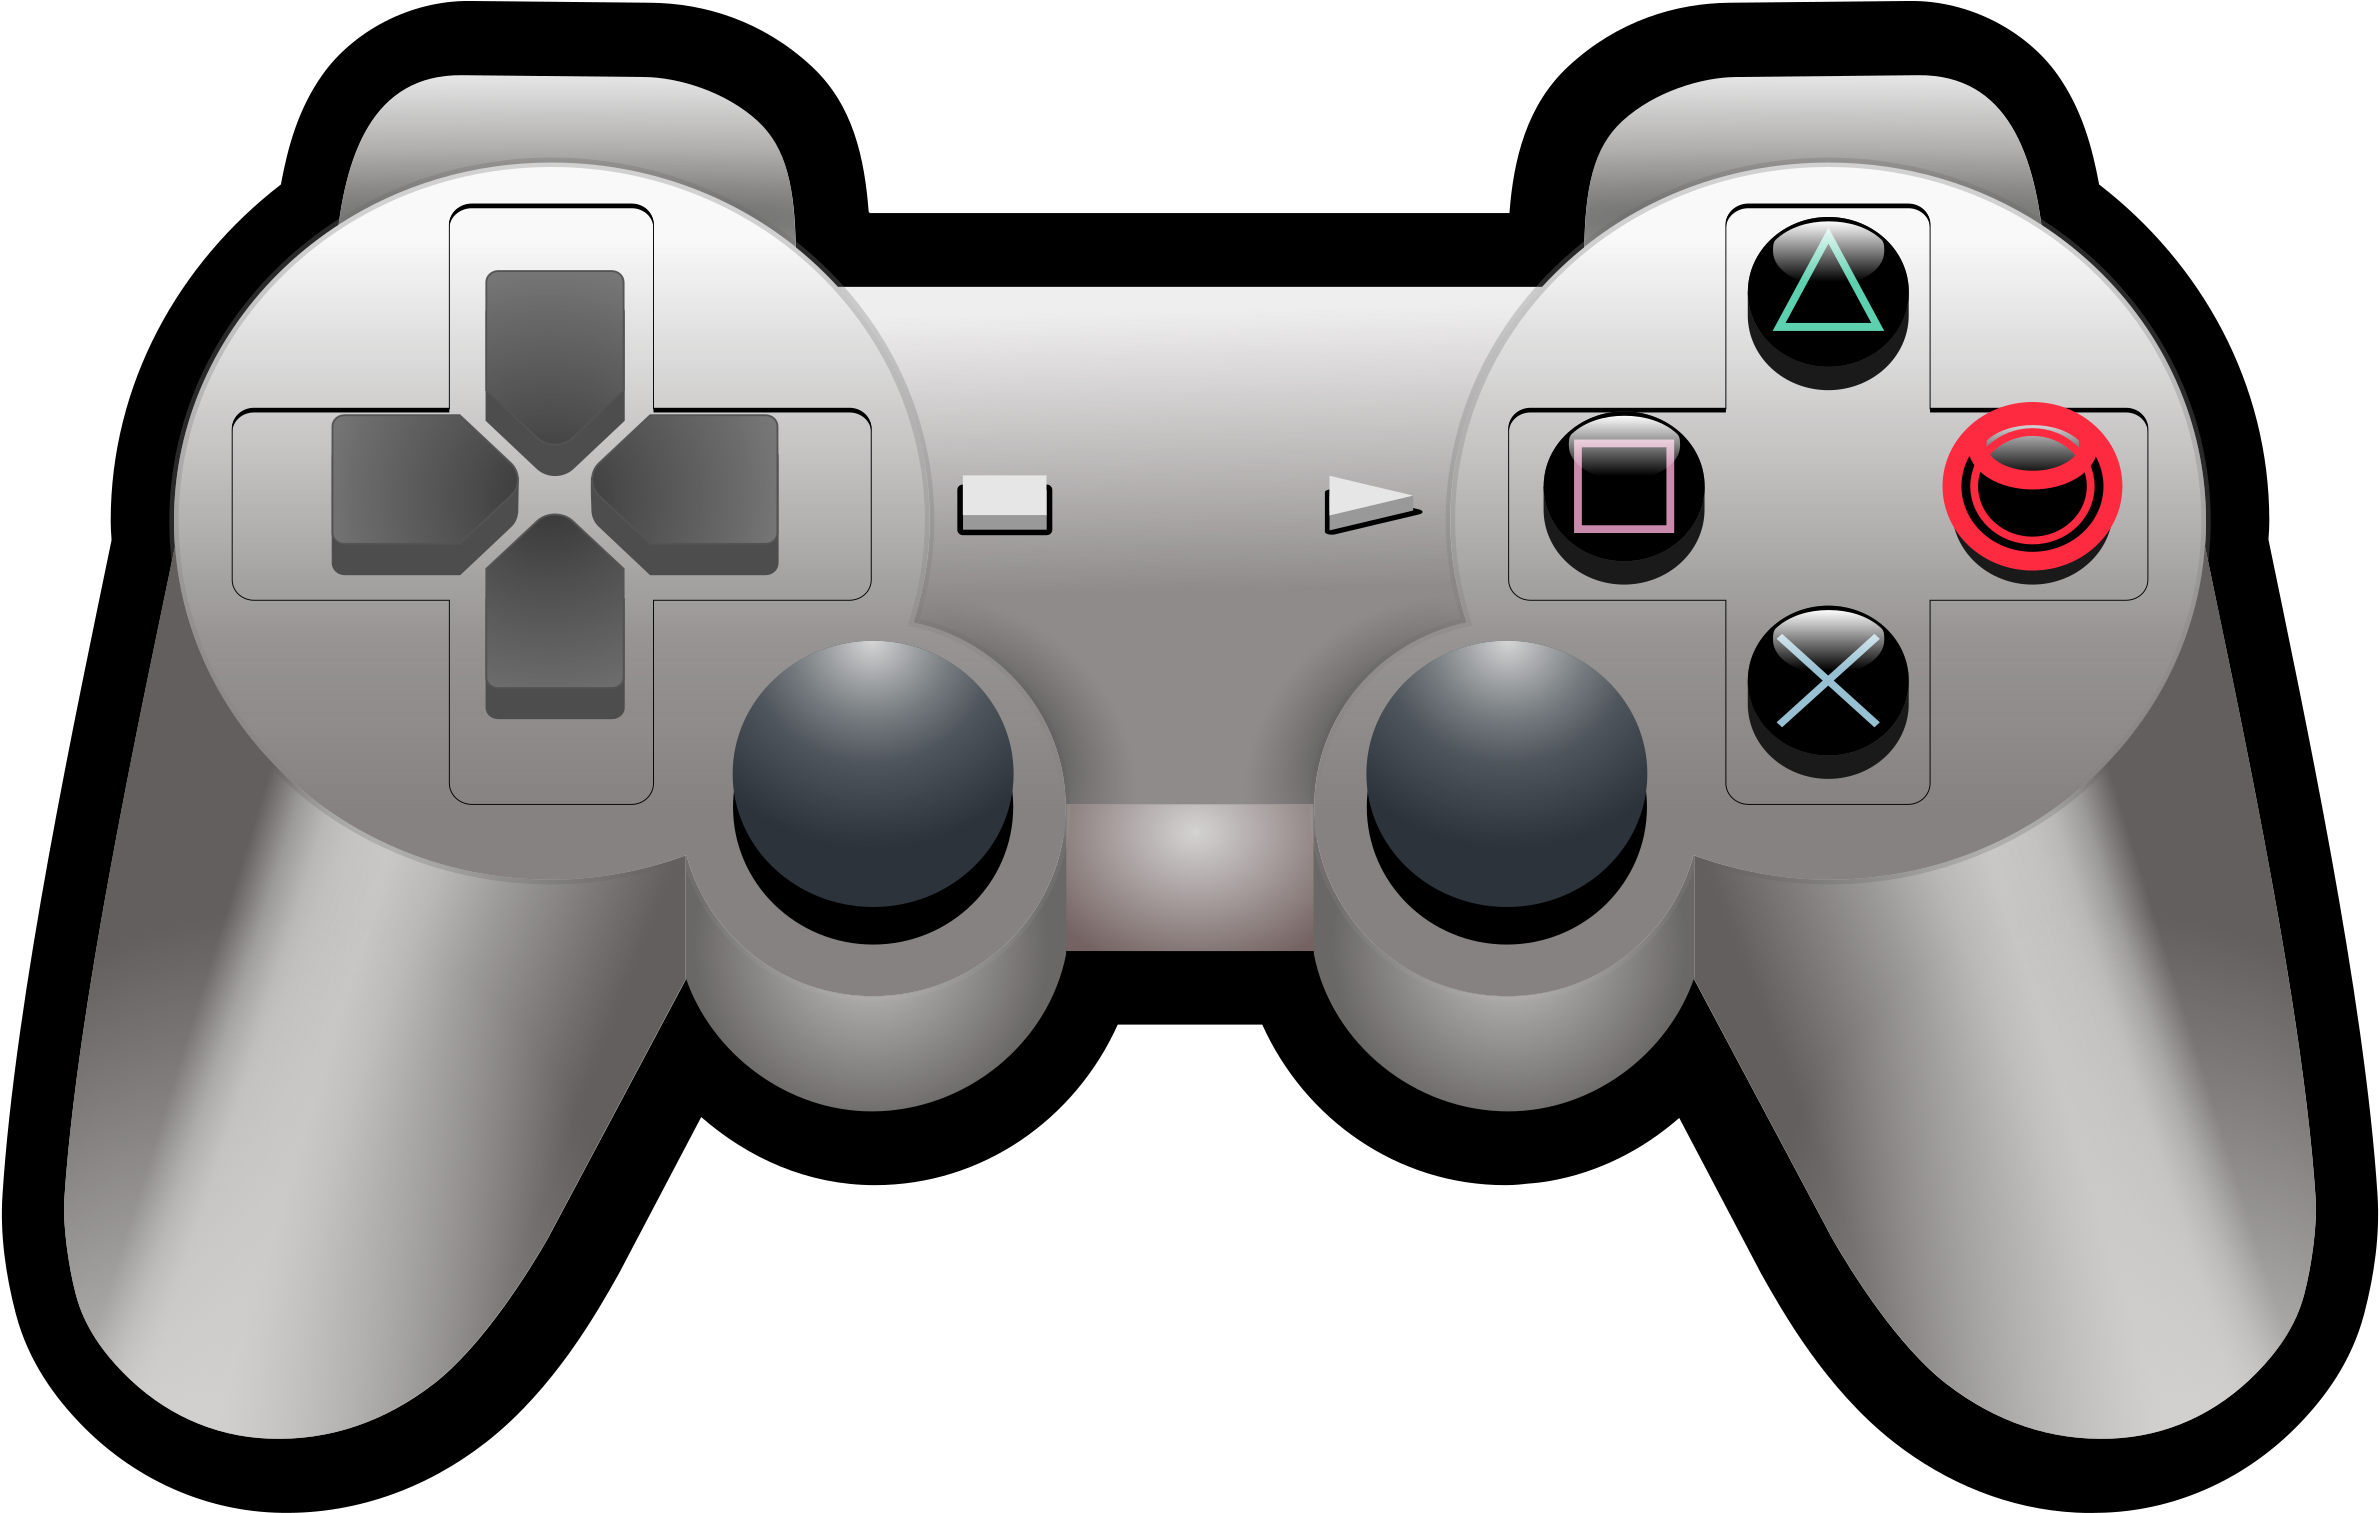 Hd Video Game Controller Transparent Bac 793253 Png Images Pngio